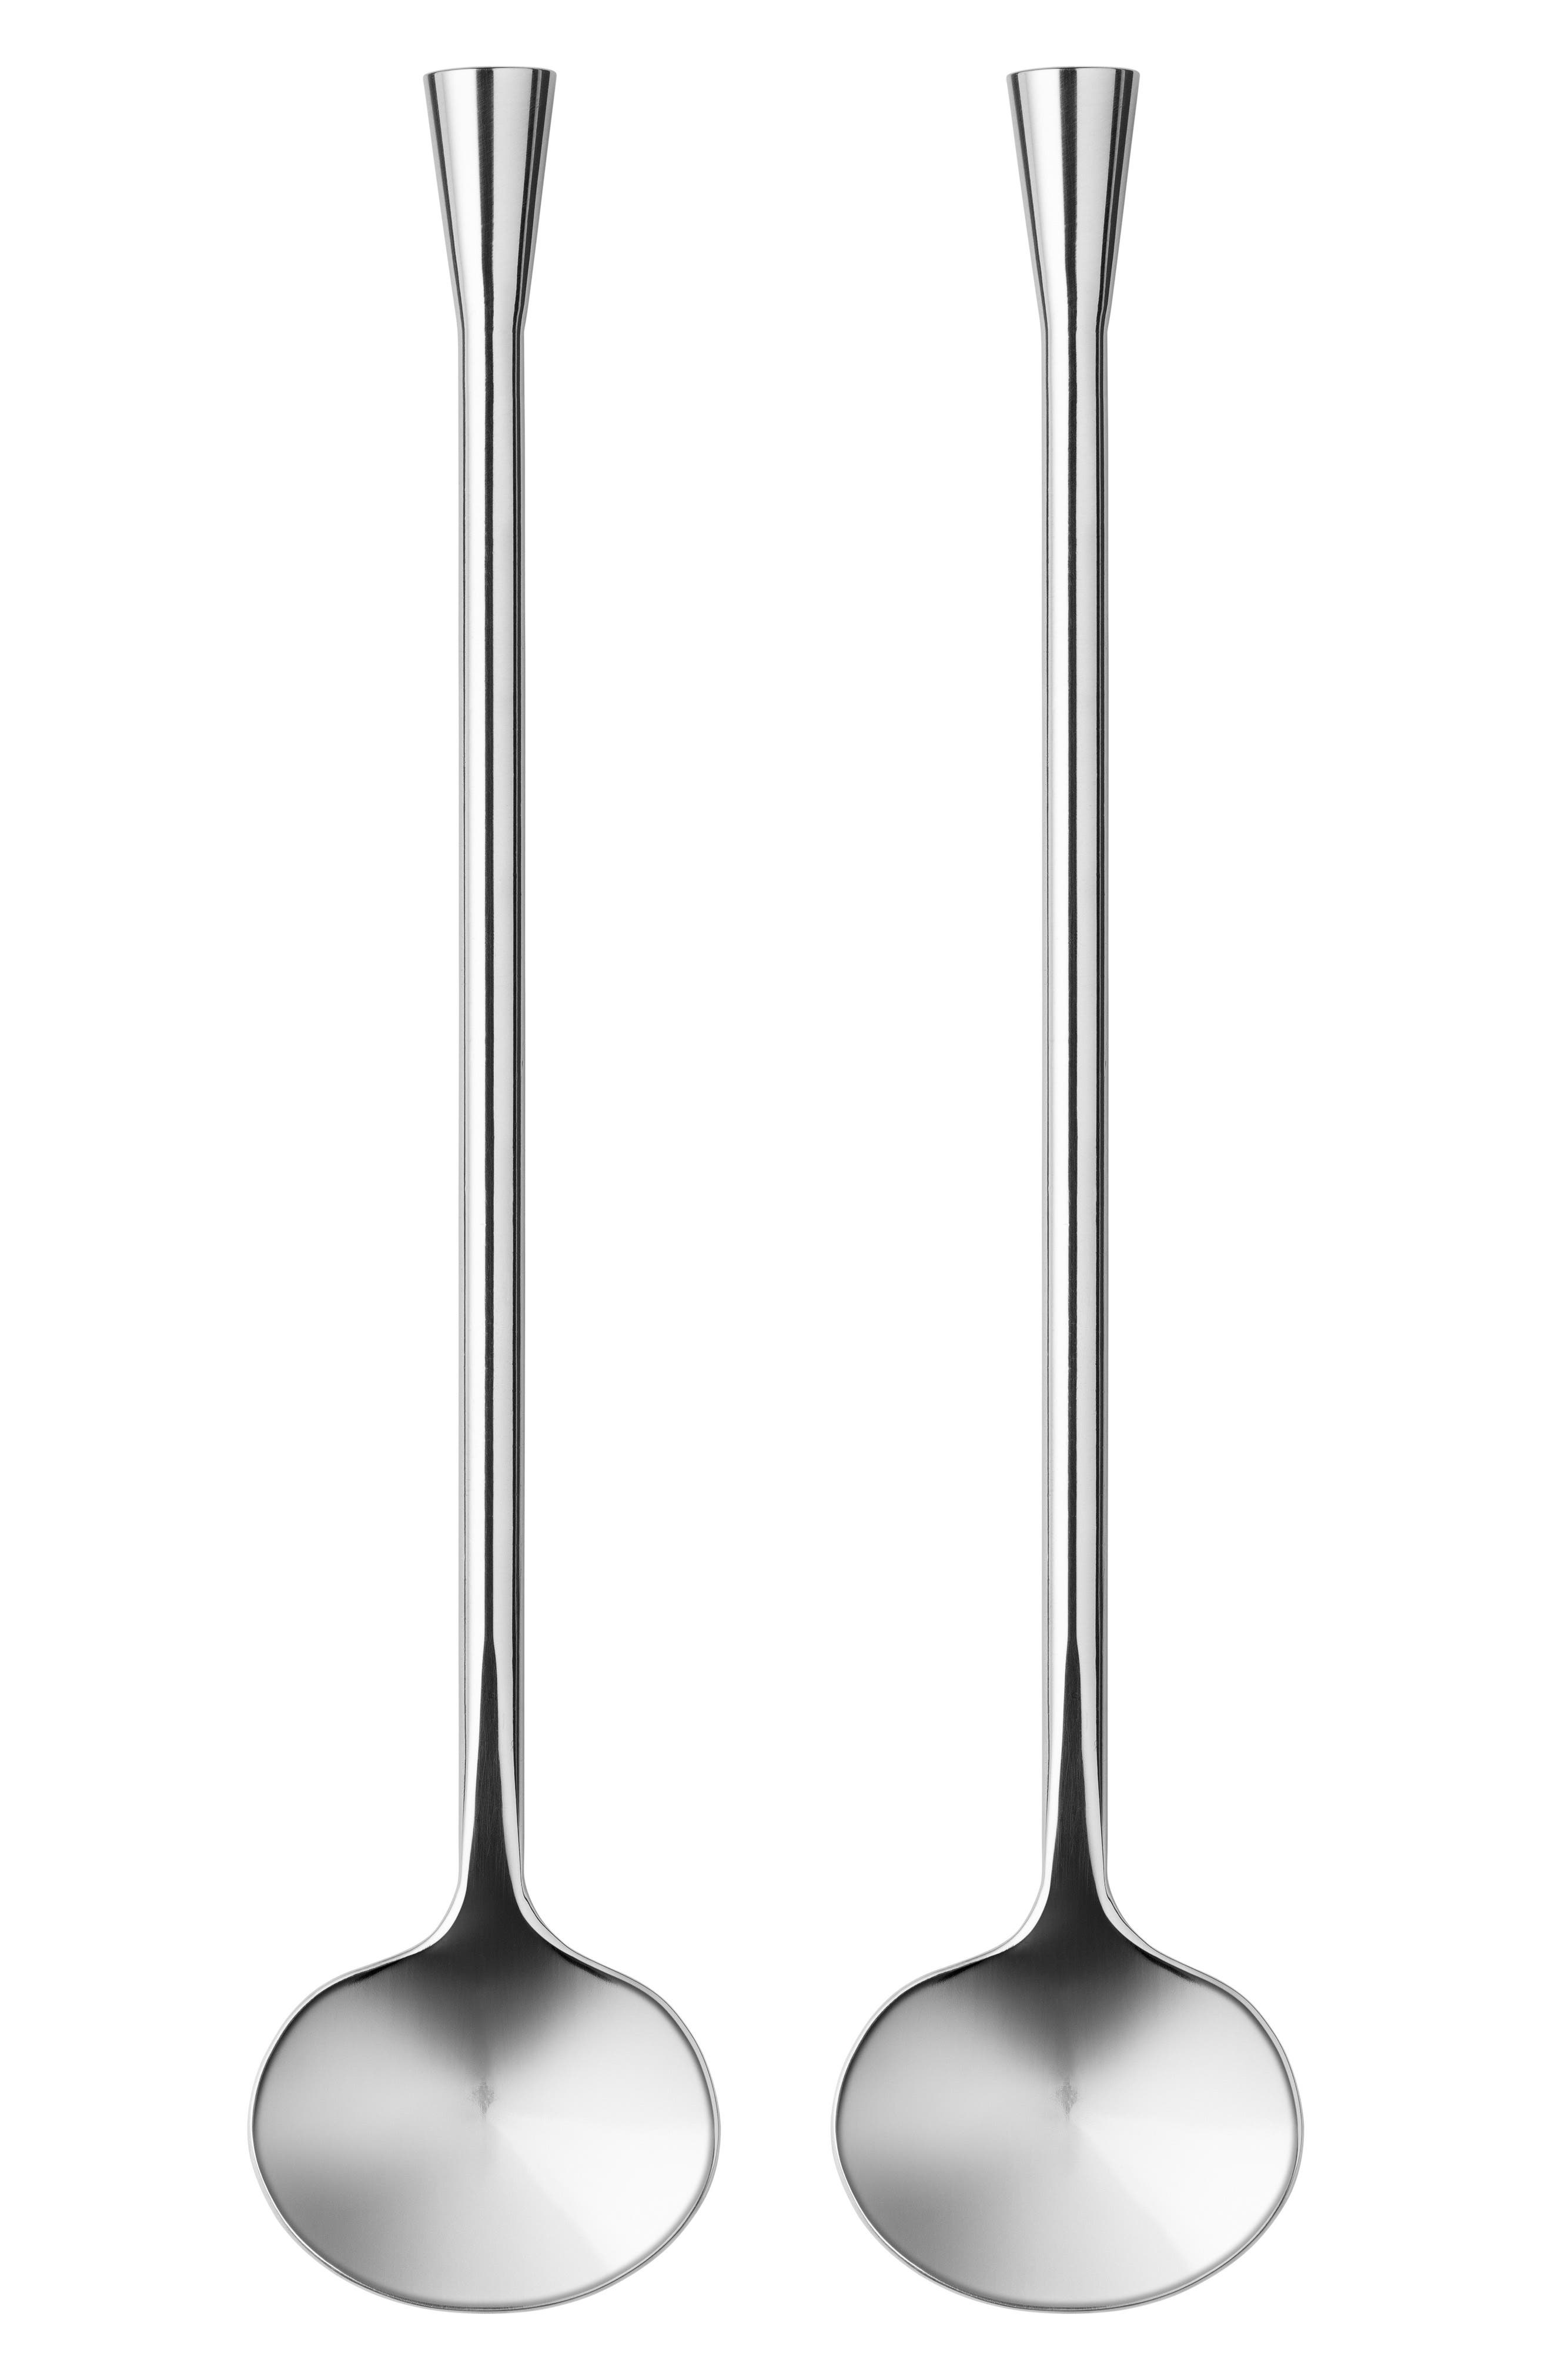 City Set of 2 Cocktail Spoons,                             Main thumbnail 1, color,                             SILVER